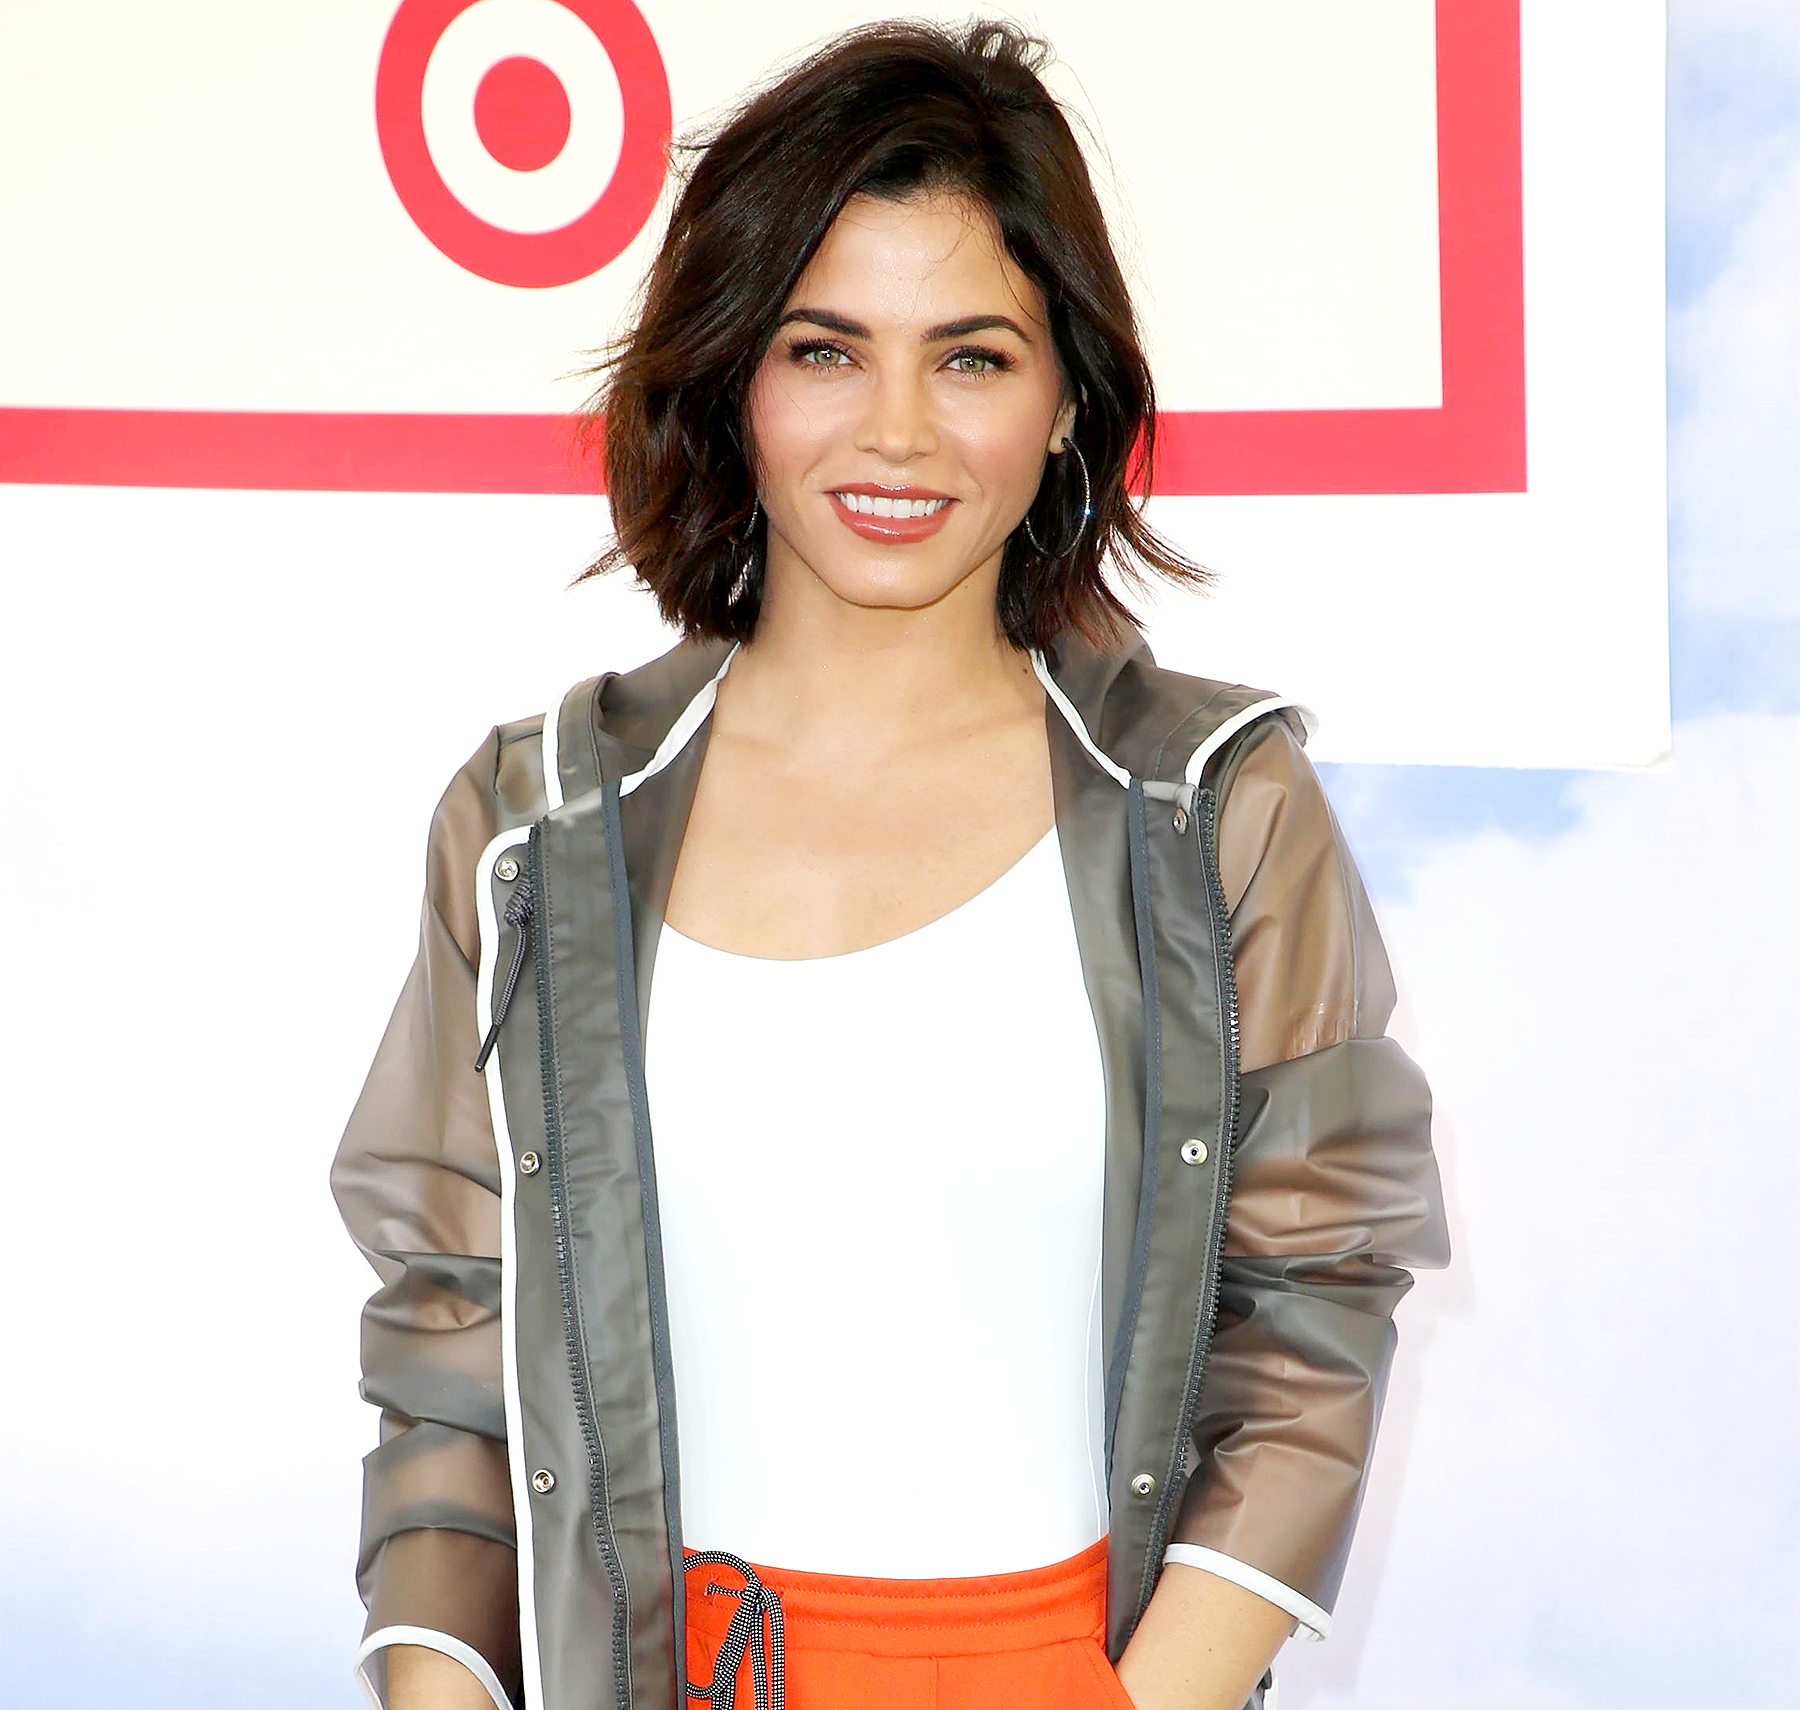 Jenna Dewan Strips Down to Her Underwear After Split from Channing Tatum